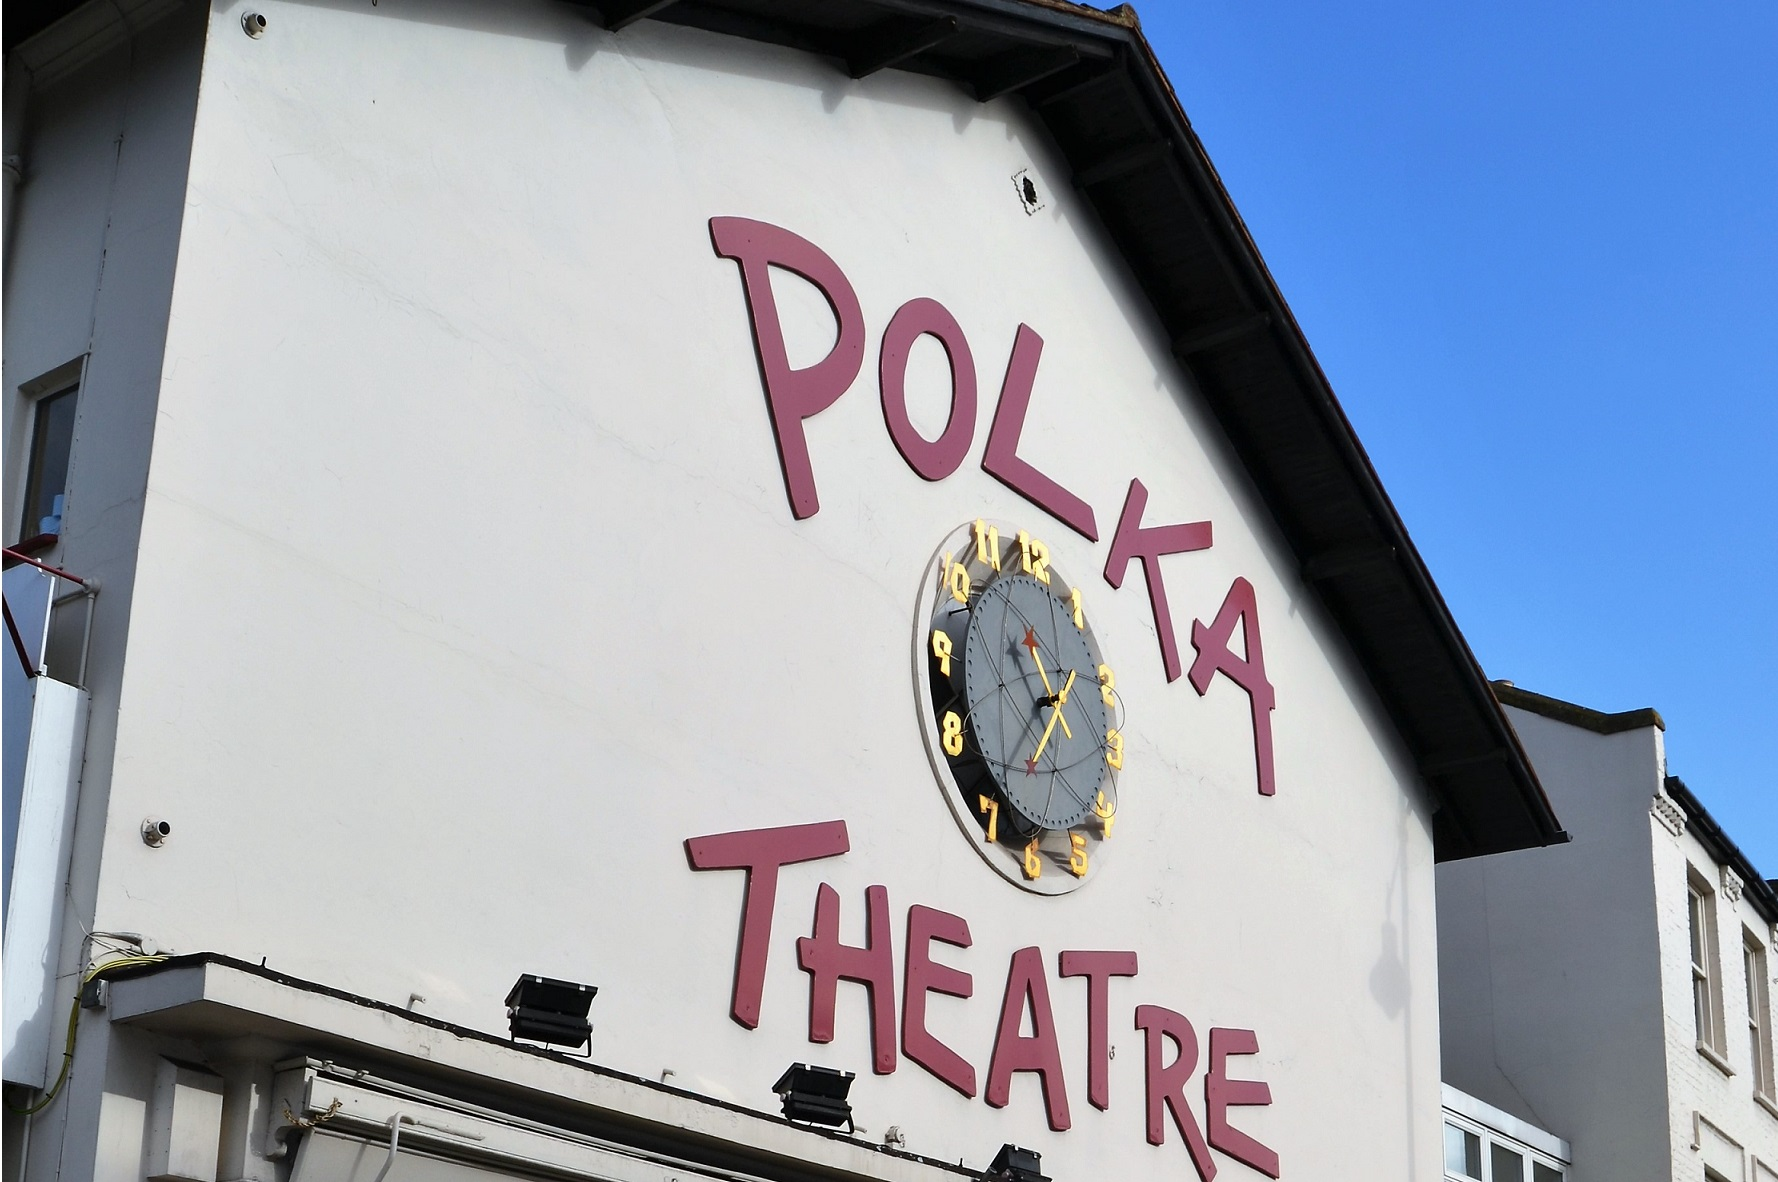 Polka Theatre- Awarded Round 2 Arts Council England Award